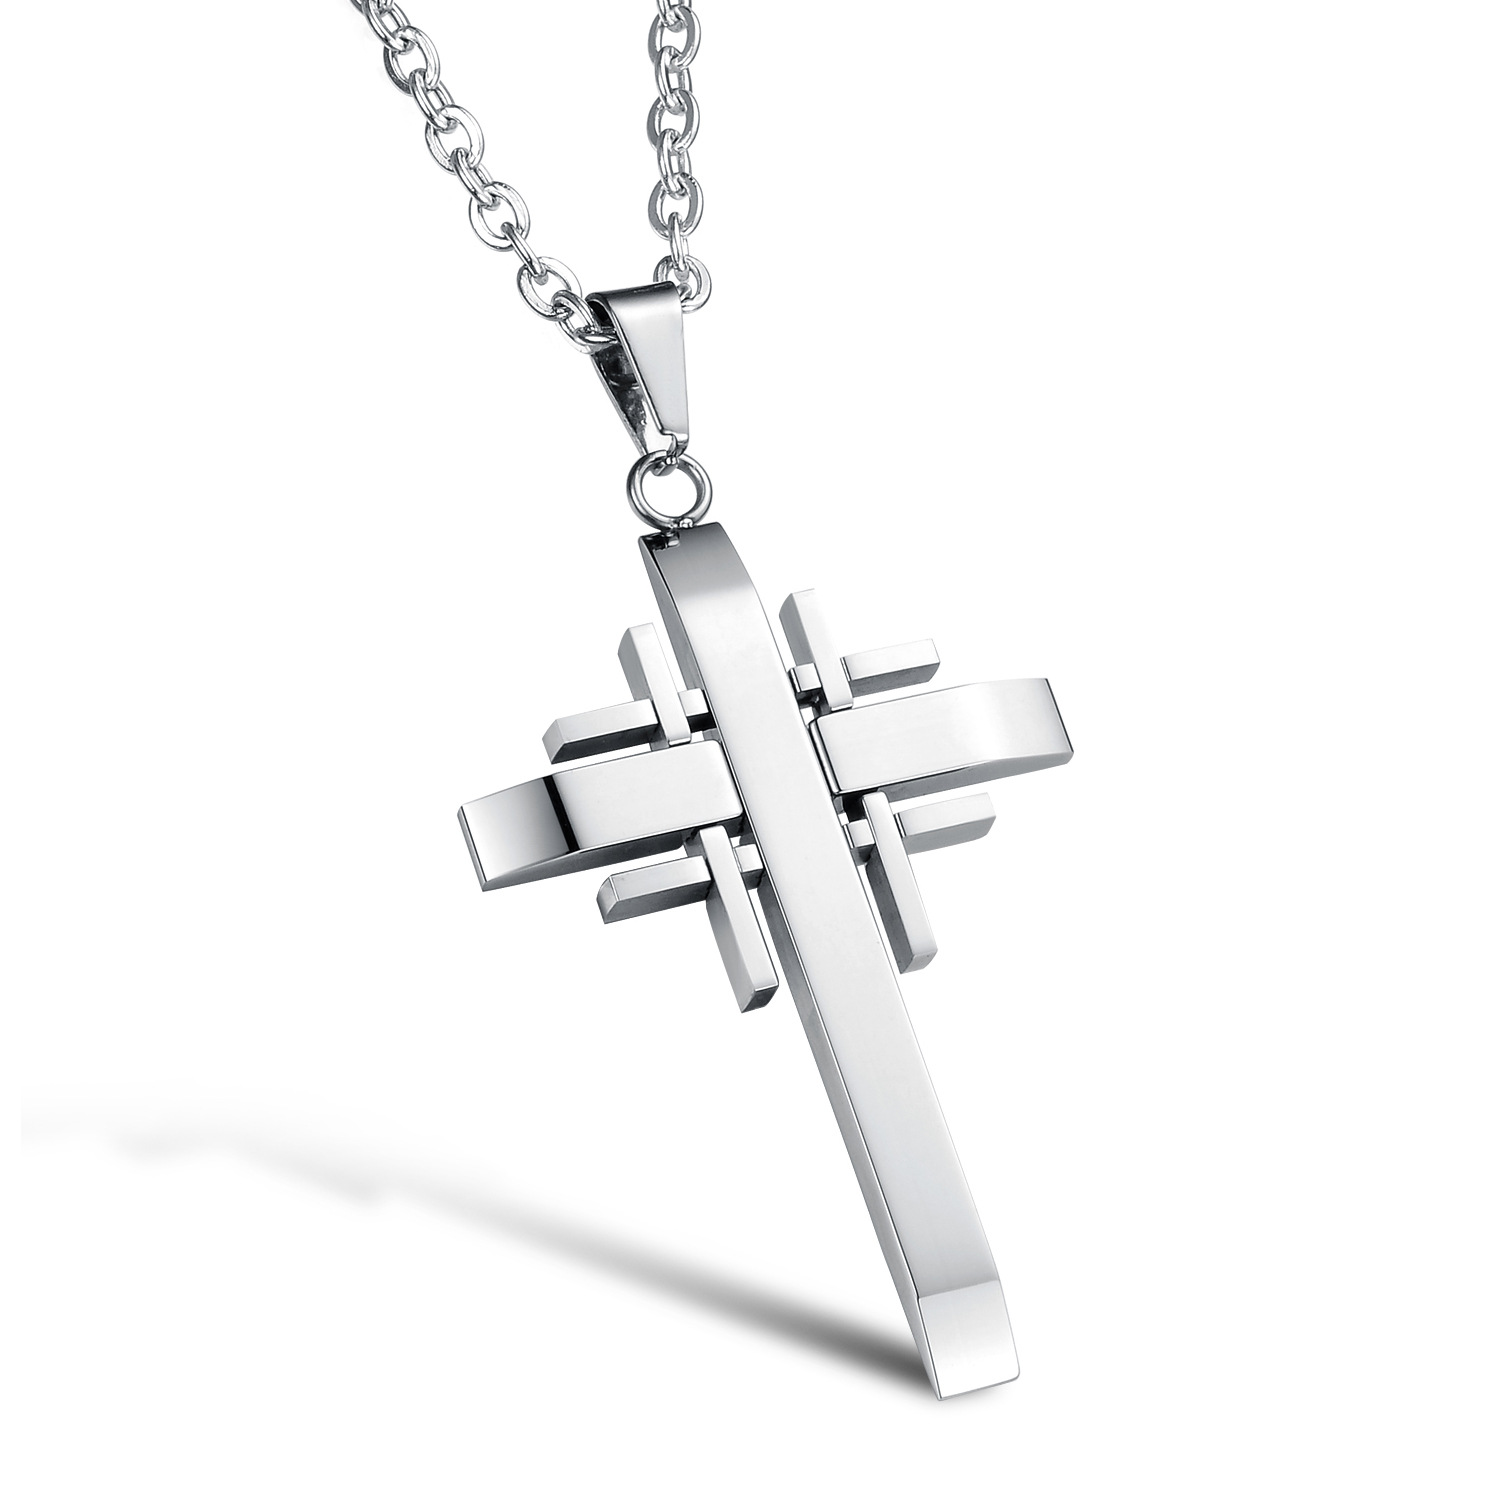 Fashion Personality Cross Pendant For Man Fashion 316L Stainless Steel Silver/Black/Gold Necklaces Vintage Men gift Jewelry(China (Mainland))